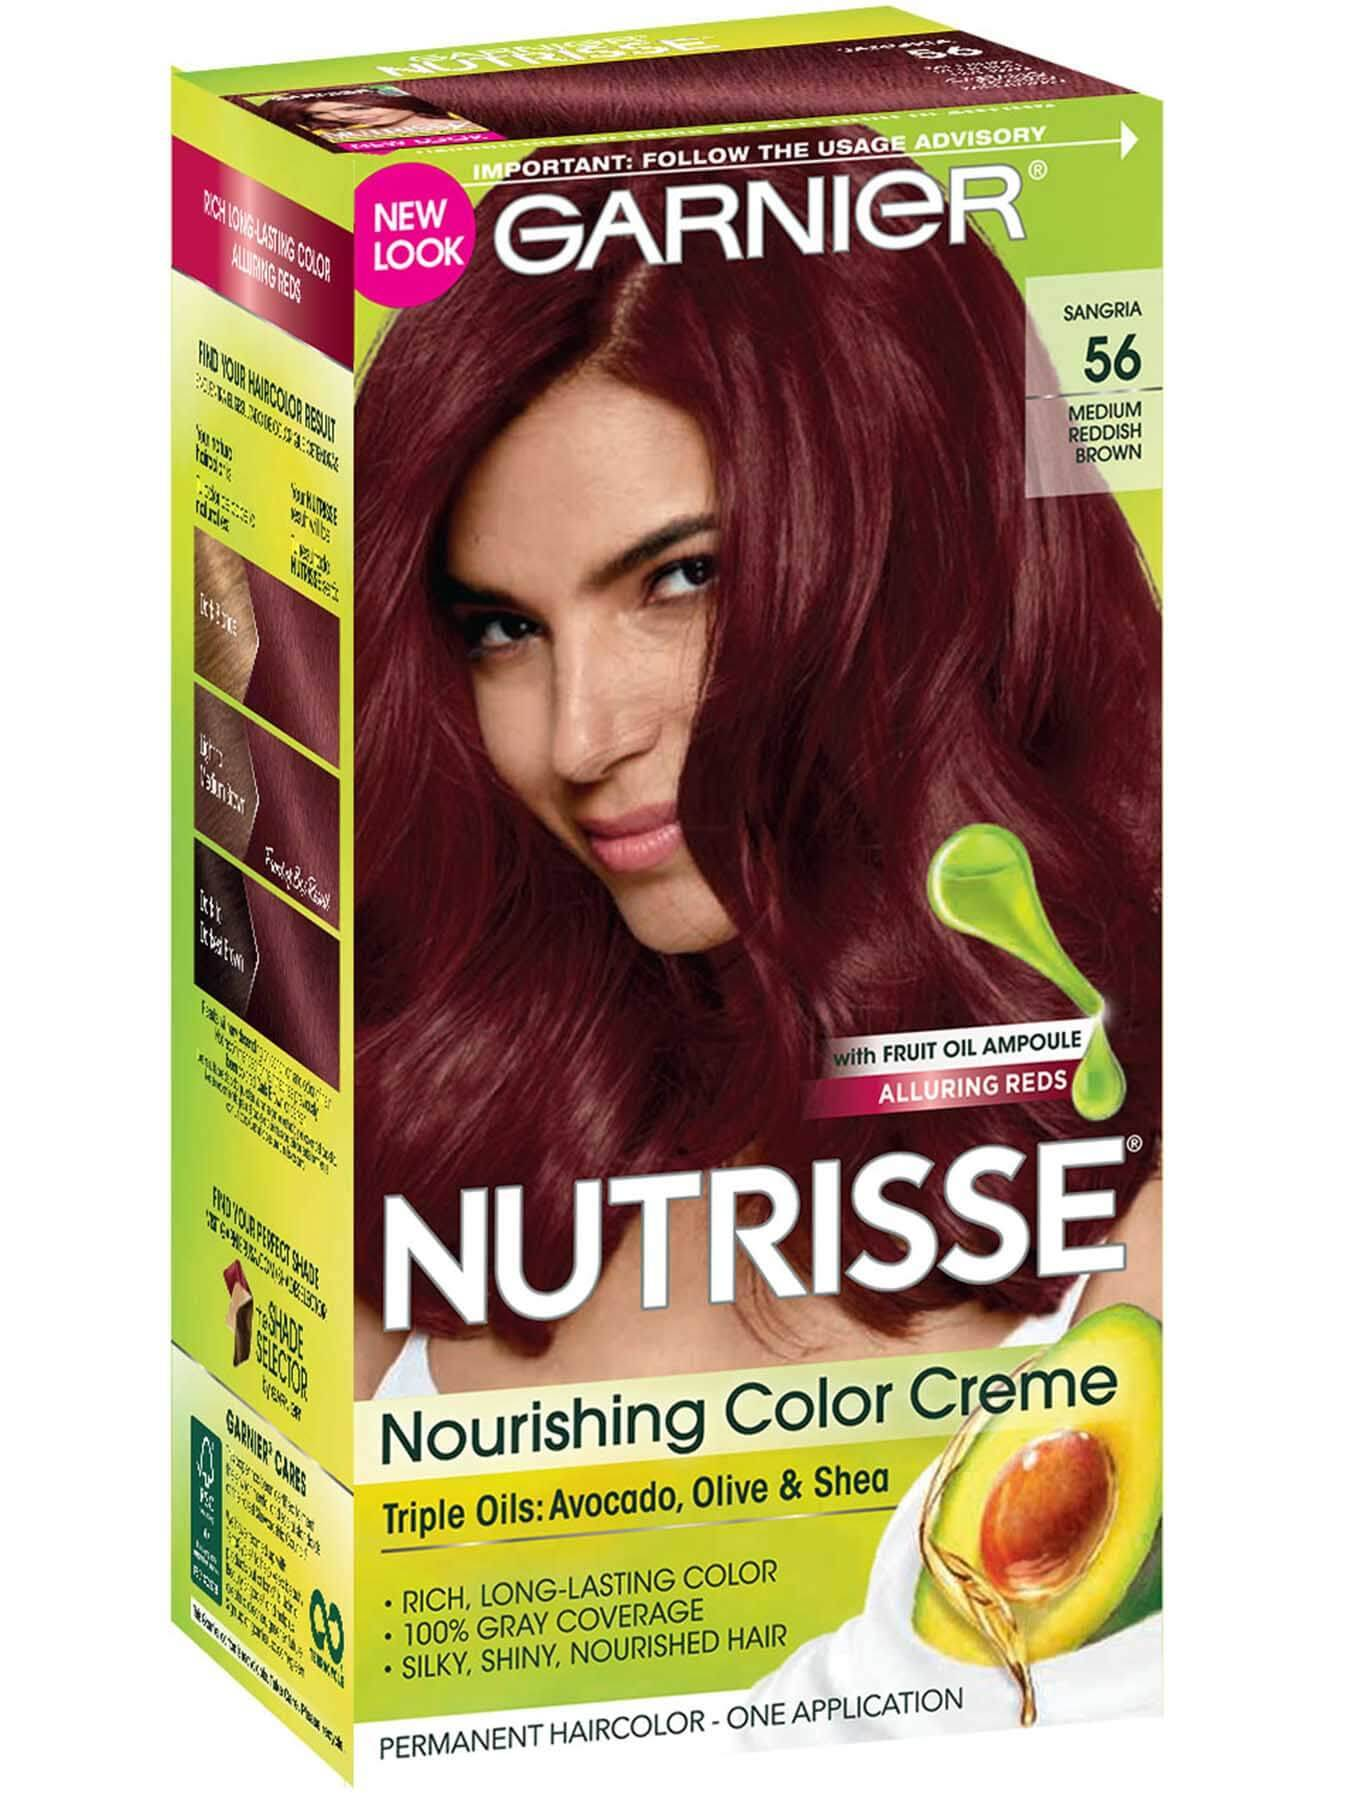 Nourishing Color Creme Medium Reddish Brown 56 (Sangria).